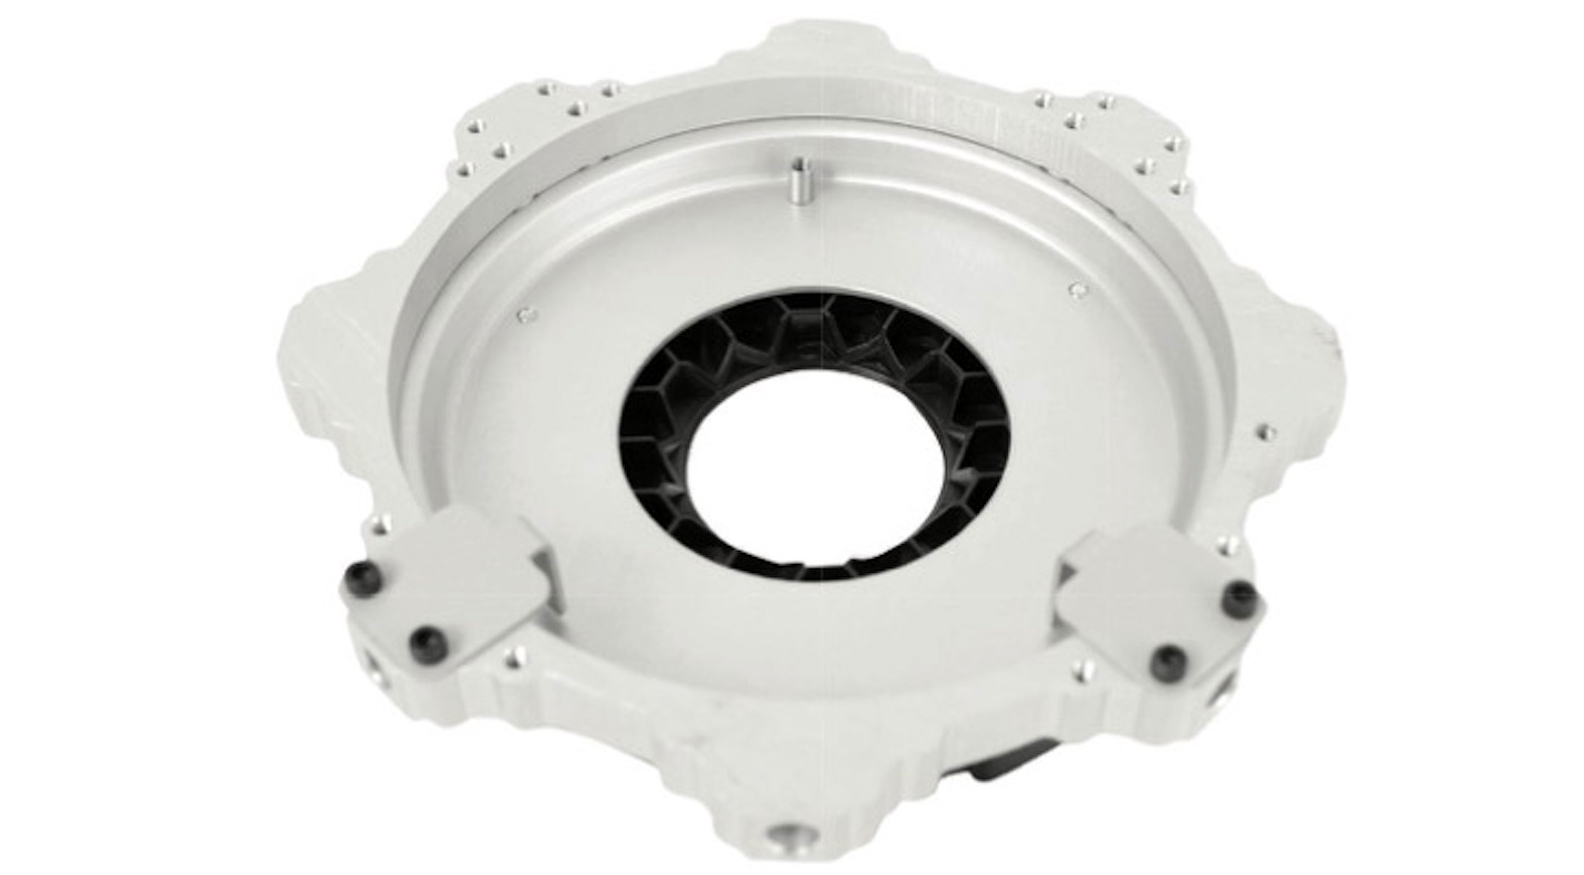 Arri Orbiter Speed Ring